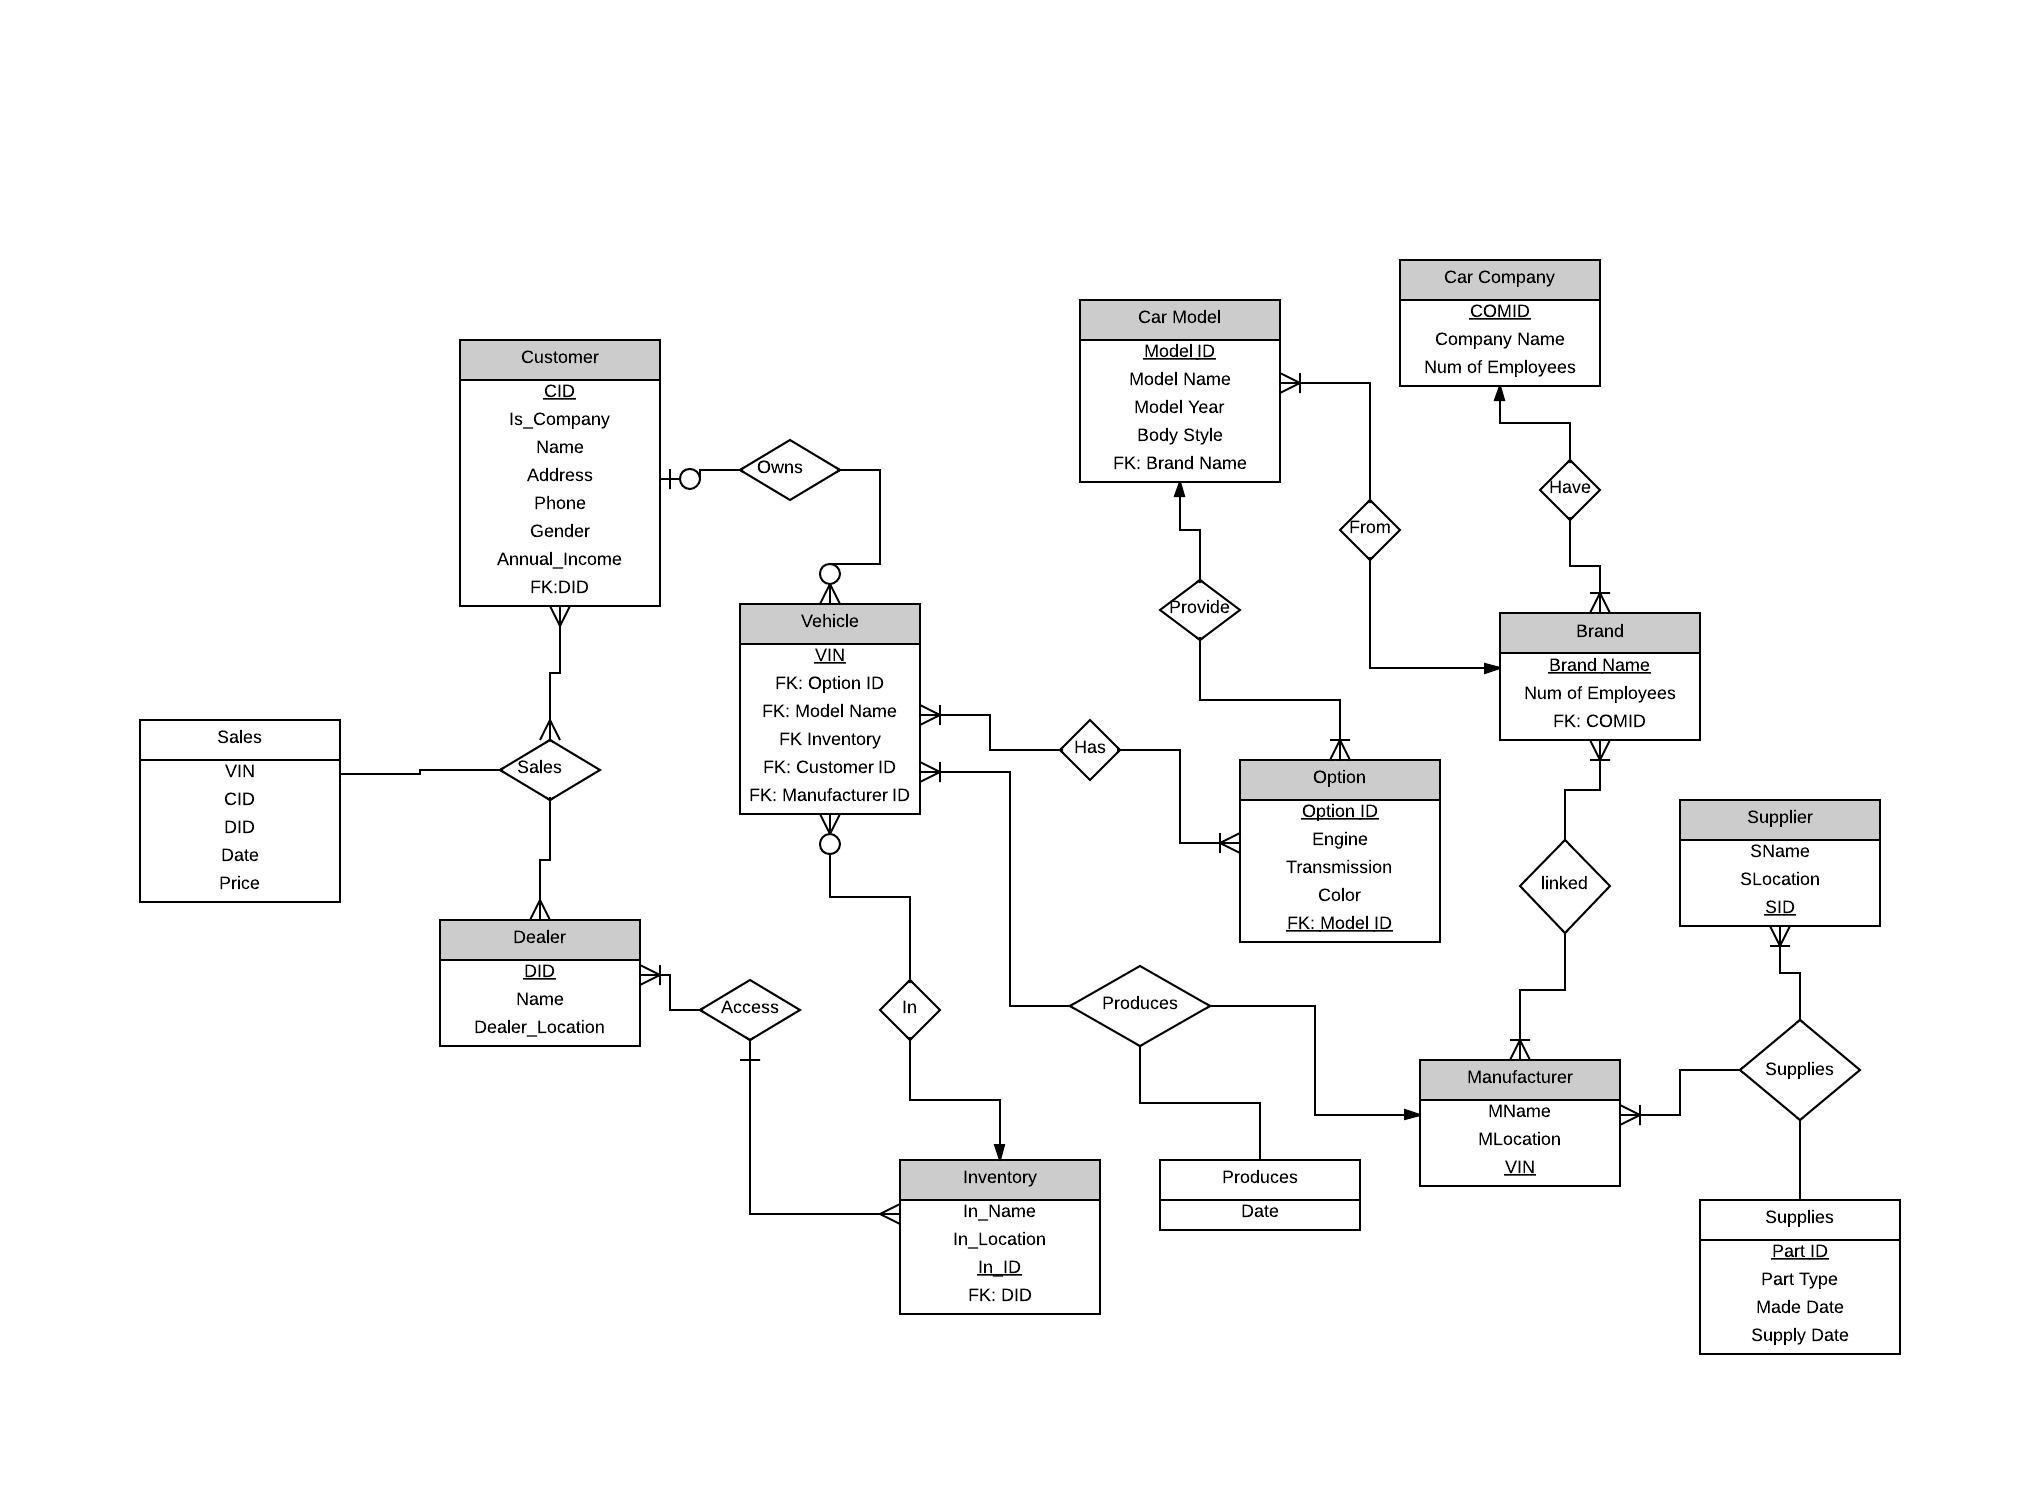 Need Help On An Er Diagram For An Automobile Company - Stack throughout Er Diagram Car